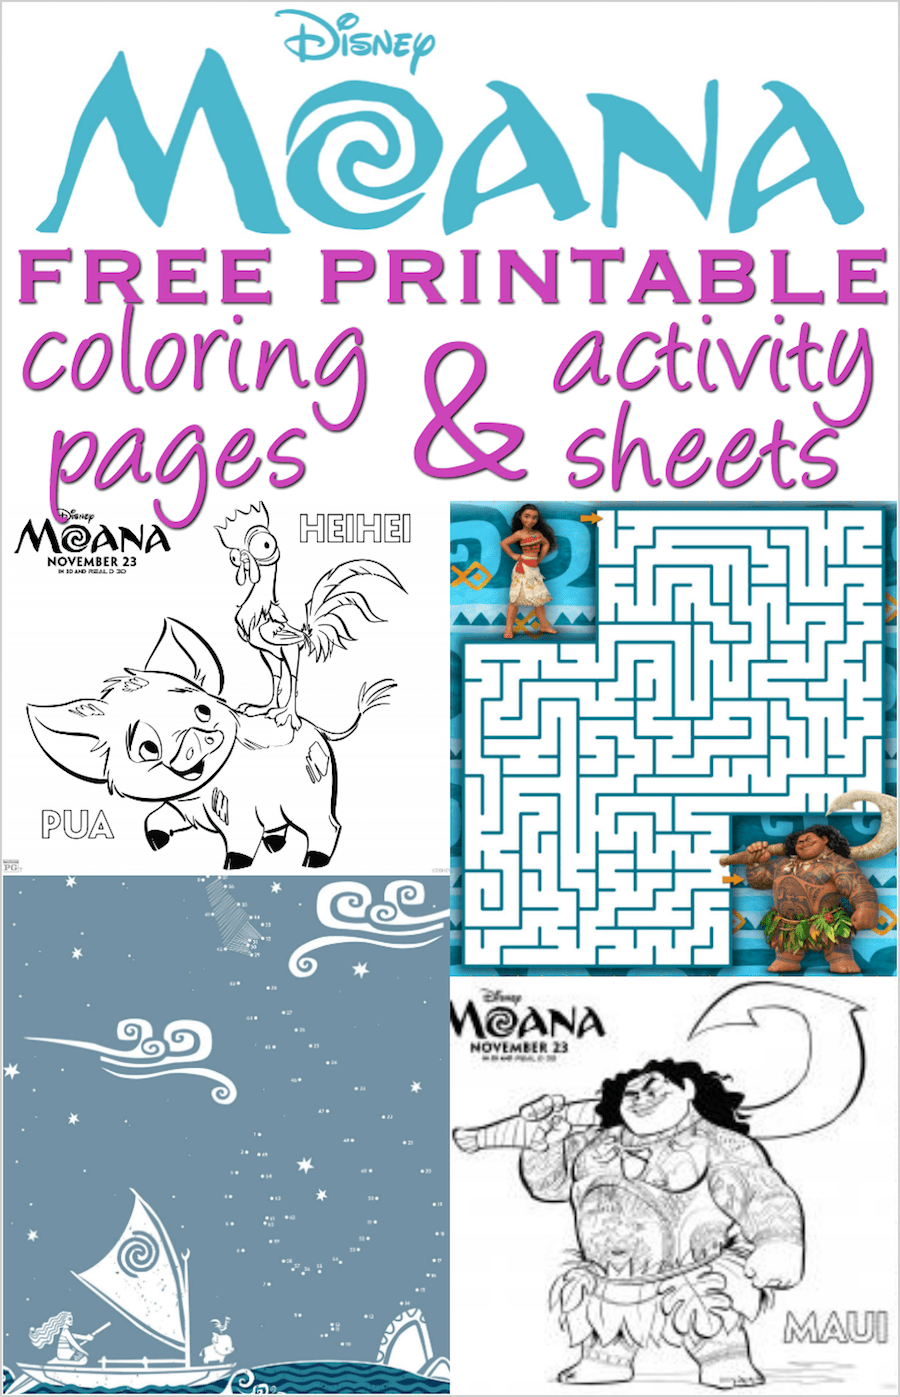 photograph regarding Moana Coloring Pages Printable named Moana coloring web pages and video game sheets - Earlier mentioned 30 no cost